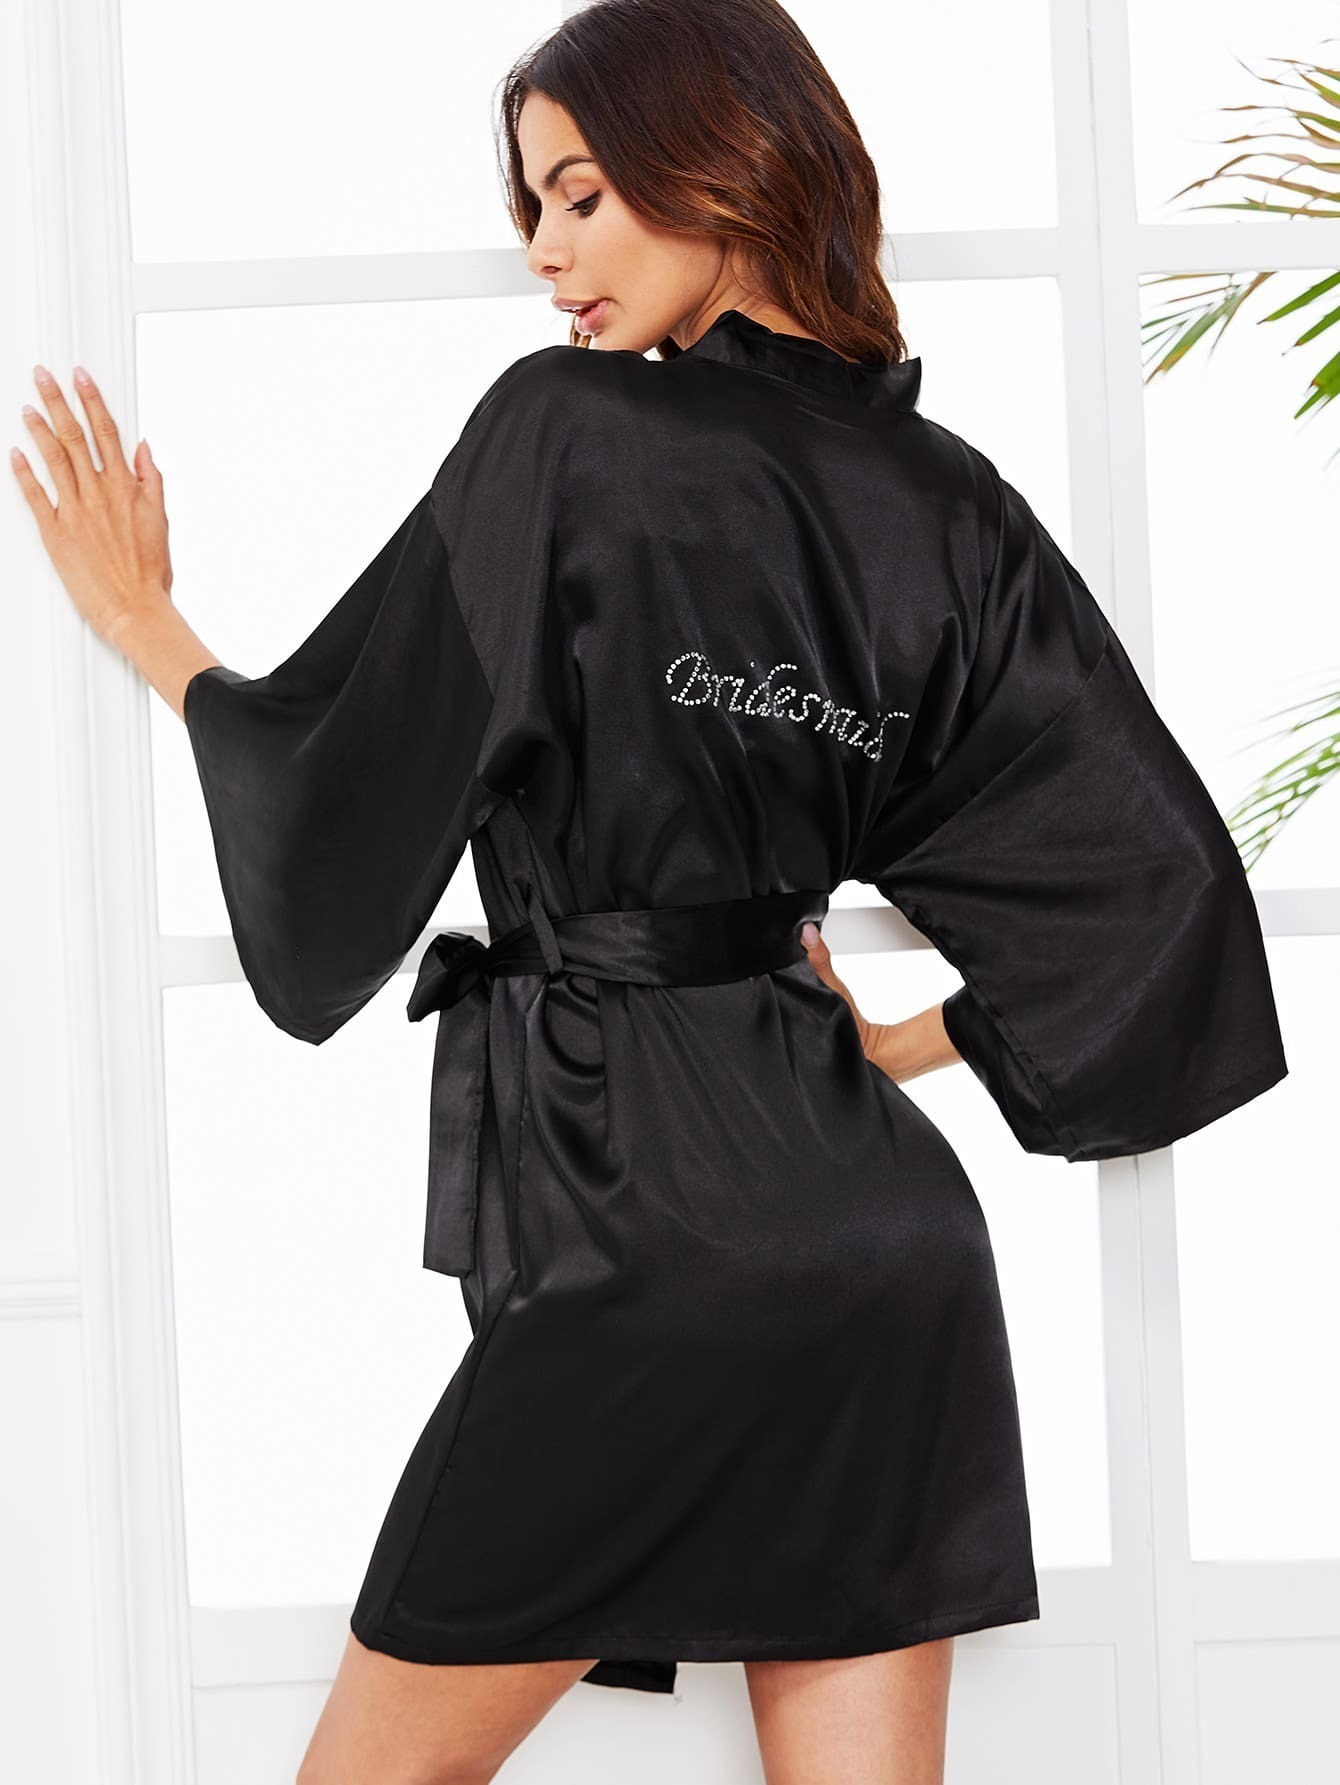 Self Tie Wrap Bride Robe self tie satin robe with panty